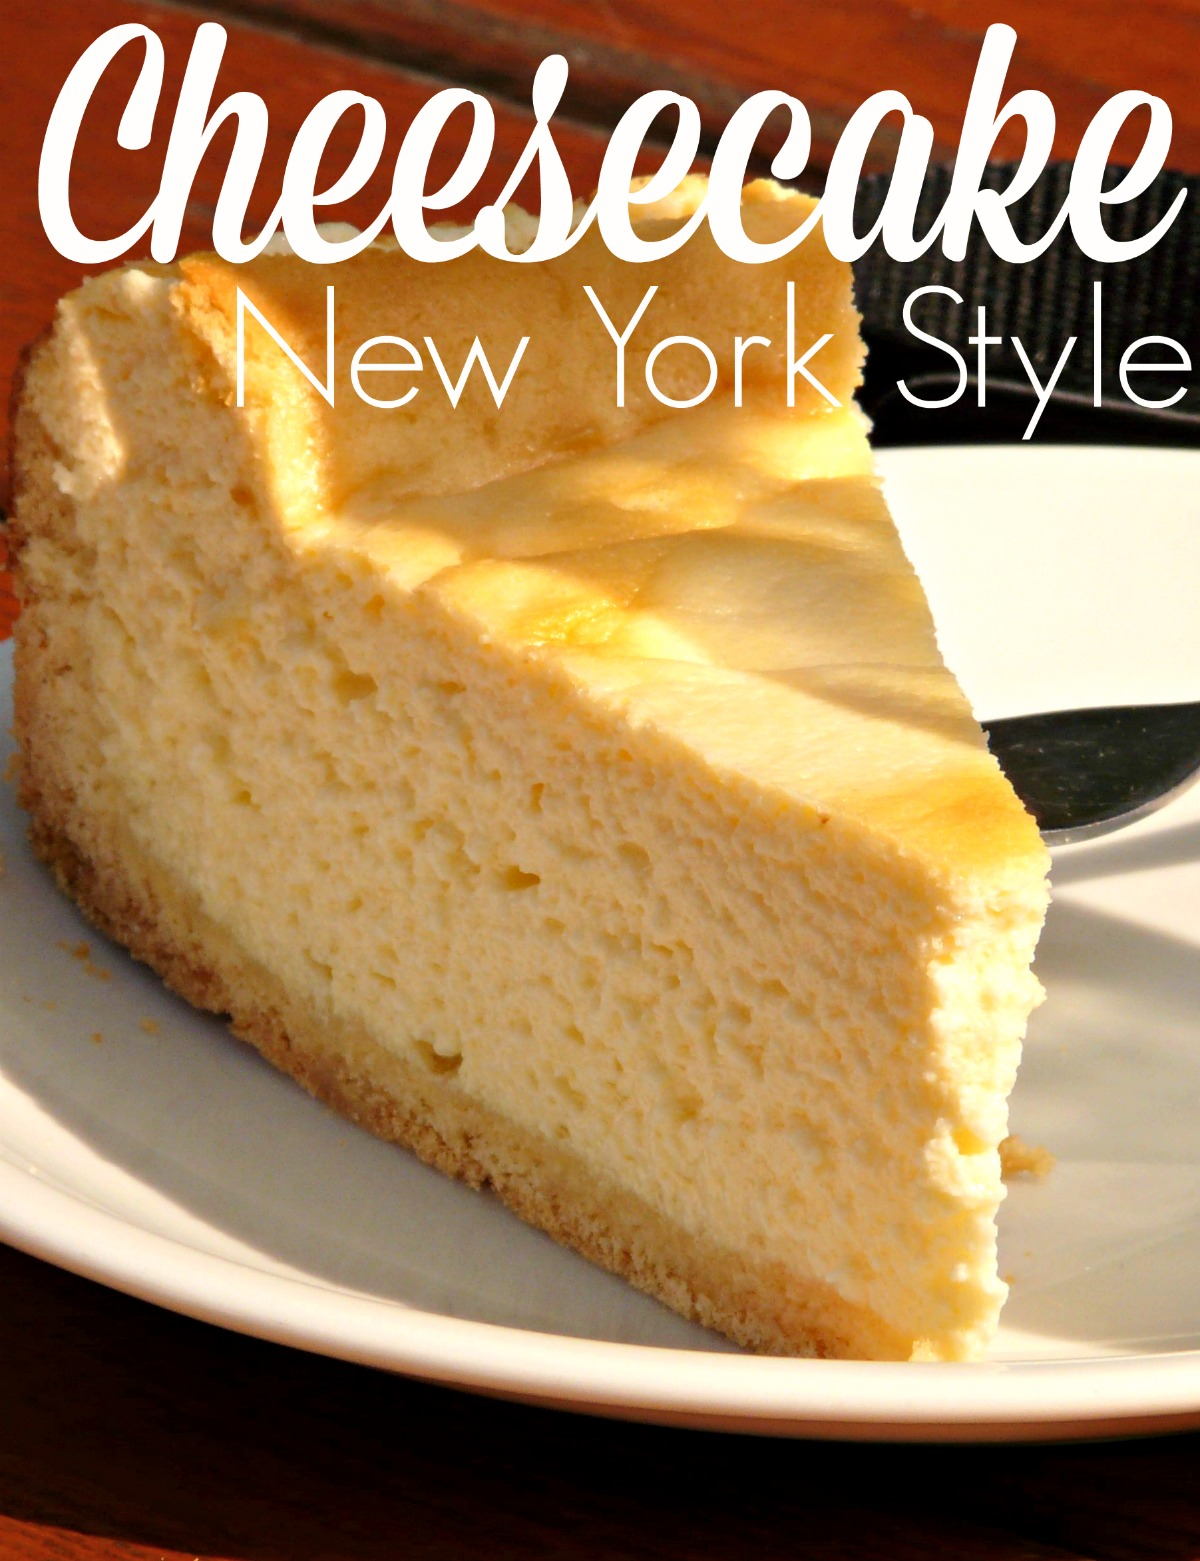 Make your own classic New York Style Cheesecake with this simple recipe. Only 6 ingredients!